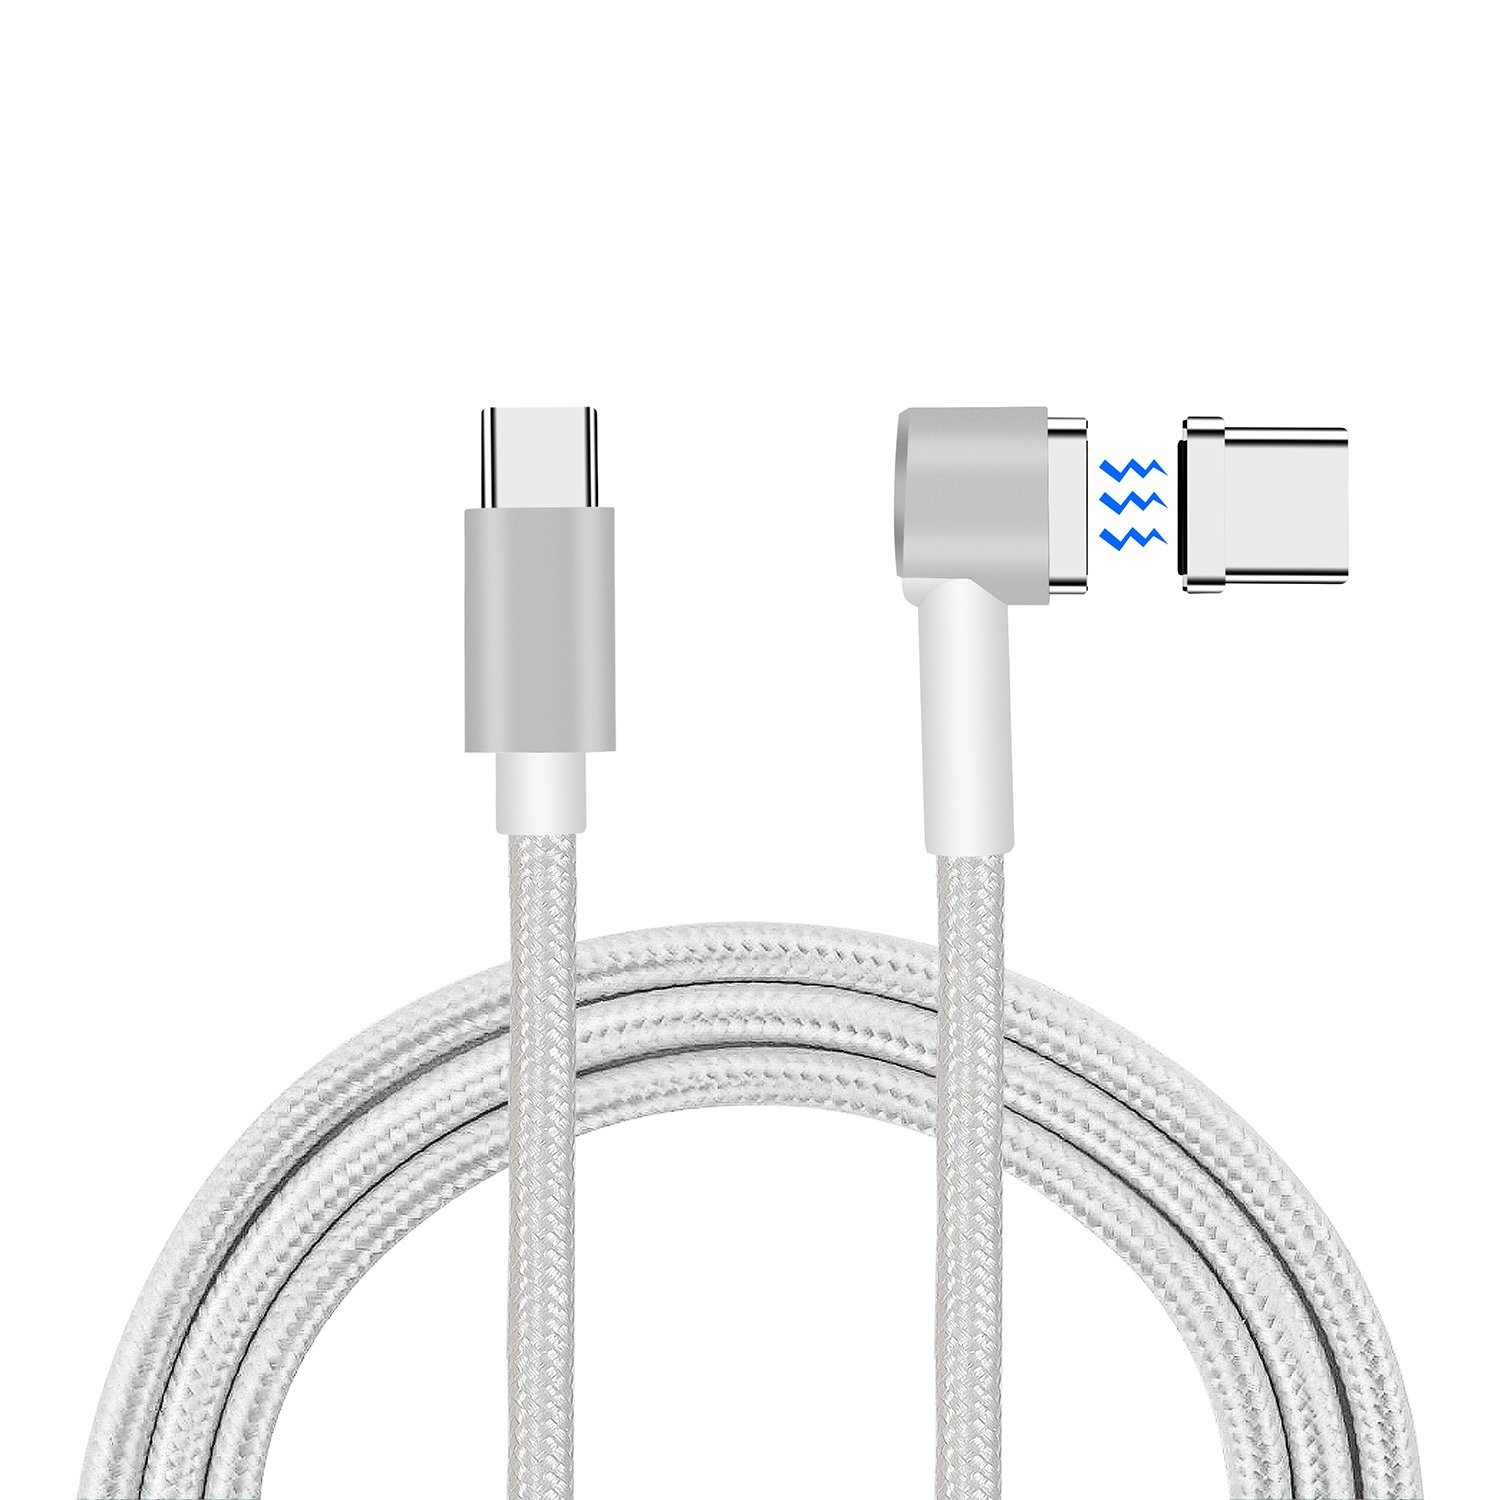 Magnetic USB C Cable For MacBook(Pro),Seekermaker Magnetic Charger for Macbook Pro, Chromebook Pixel, Samsung Galaxy Book, Samsung Galaxy S8, Huawei P9&P10, etc.(silver)